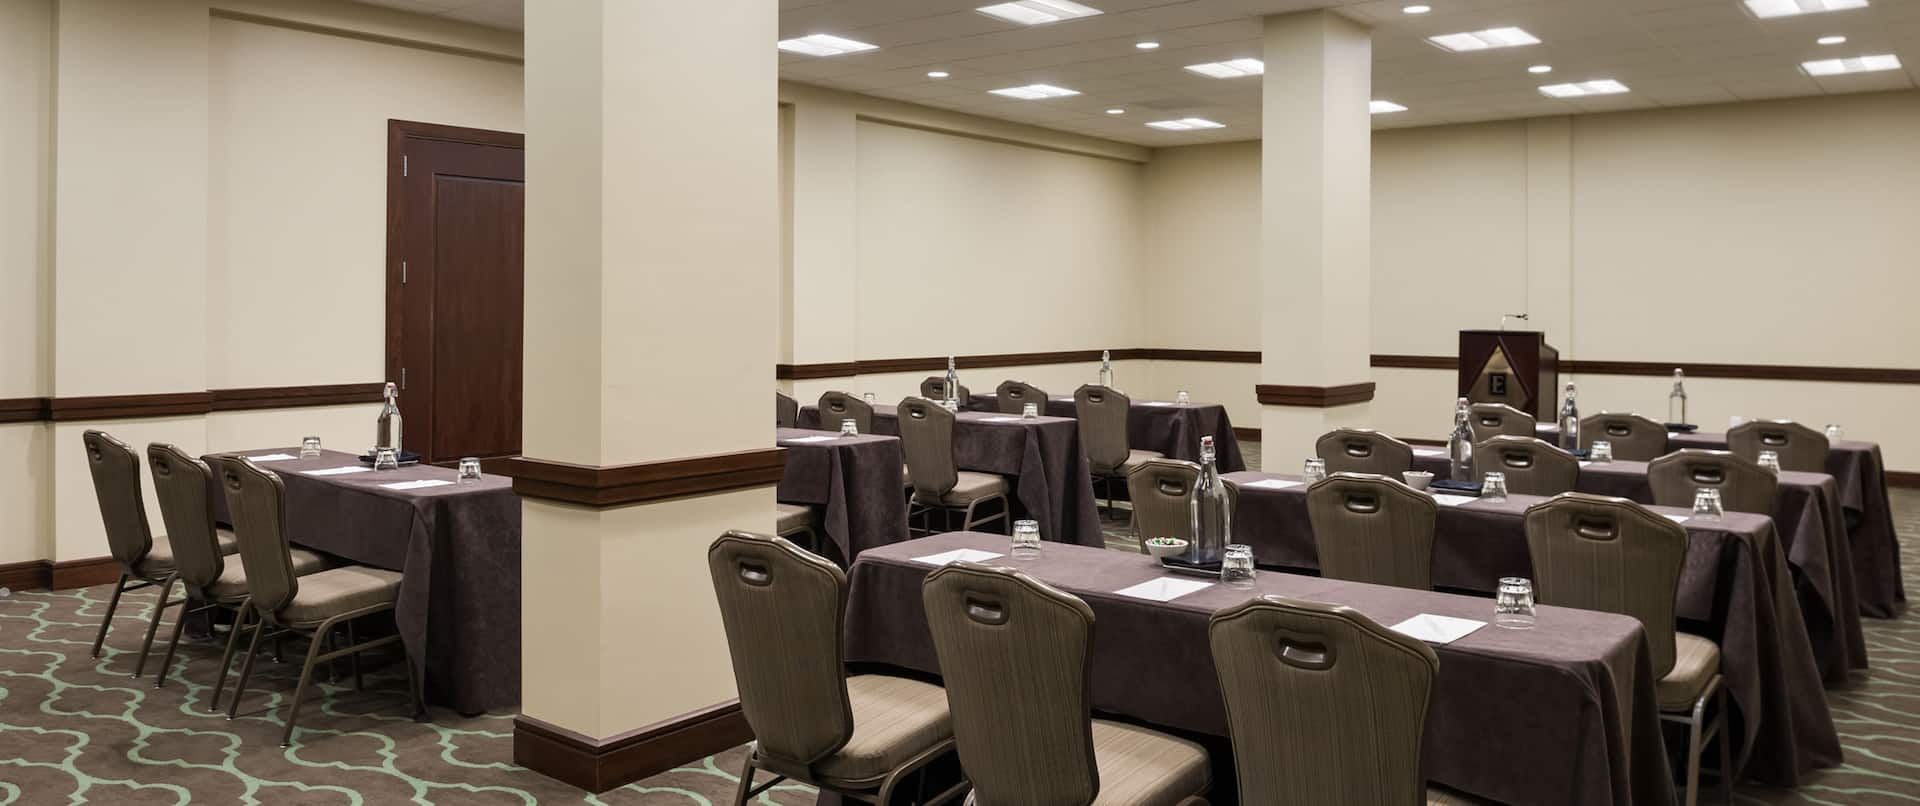 Atrio Meeting Room